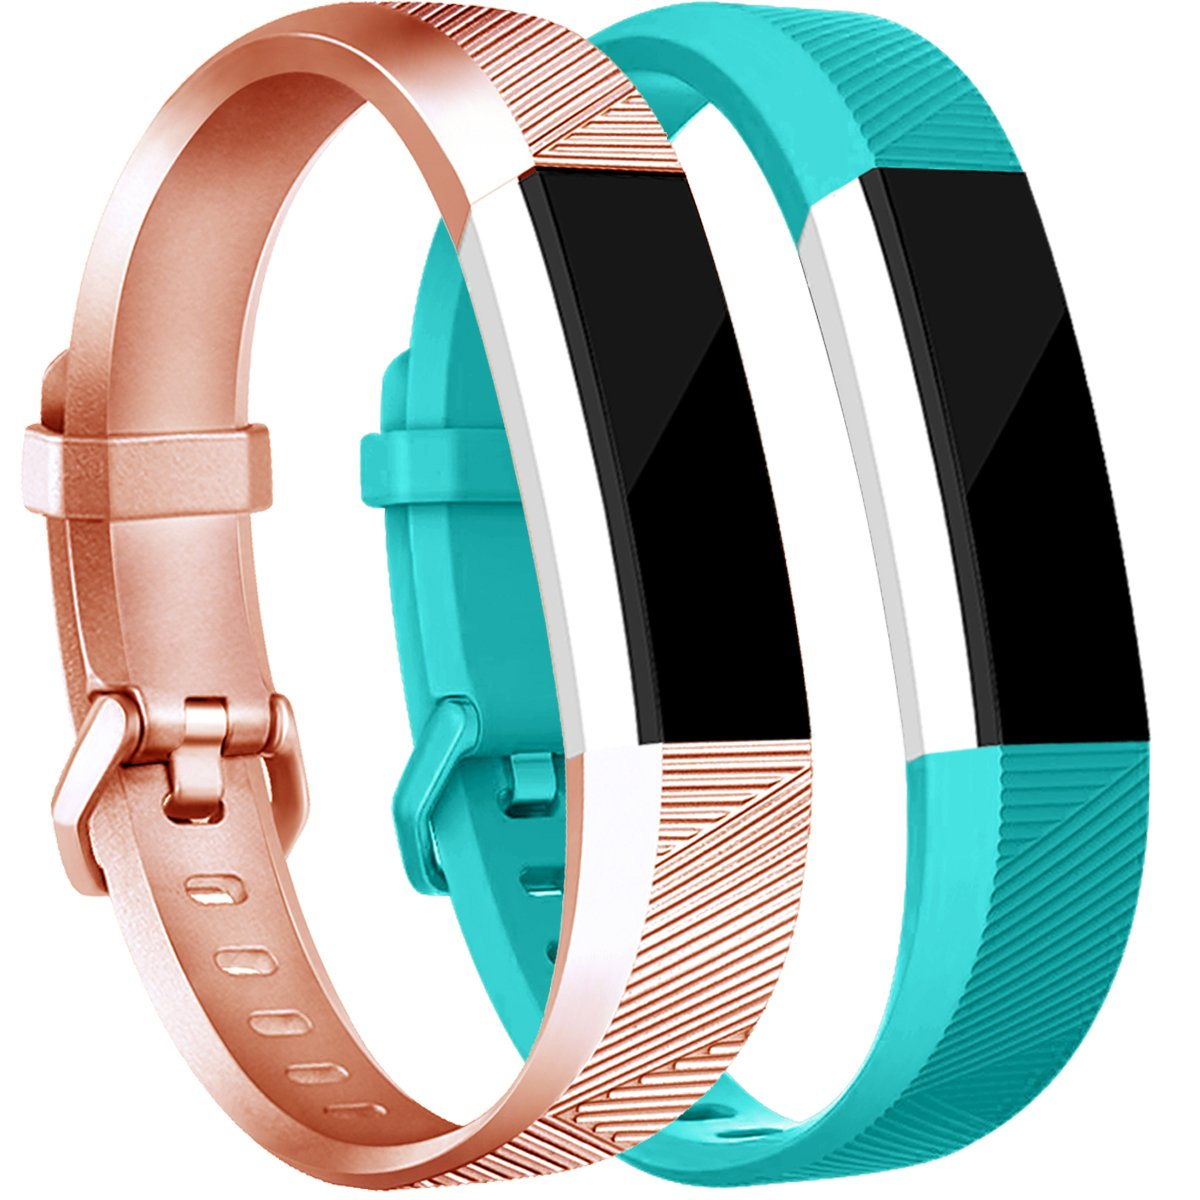 tobfit Fitbit ALTA用HRバンドレディース、メンズ、最新スタイル – スムースTpuローズゴールドandゴールドクラシックFitbit ALTA WatchアクセサリーWristbands with Metal Buckle/Clasp for Fitbit ALTAアルタHRと Small A#Rose Gold/Teal A#Rose Gold/Teal Small B07CVHD25L